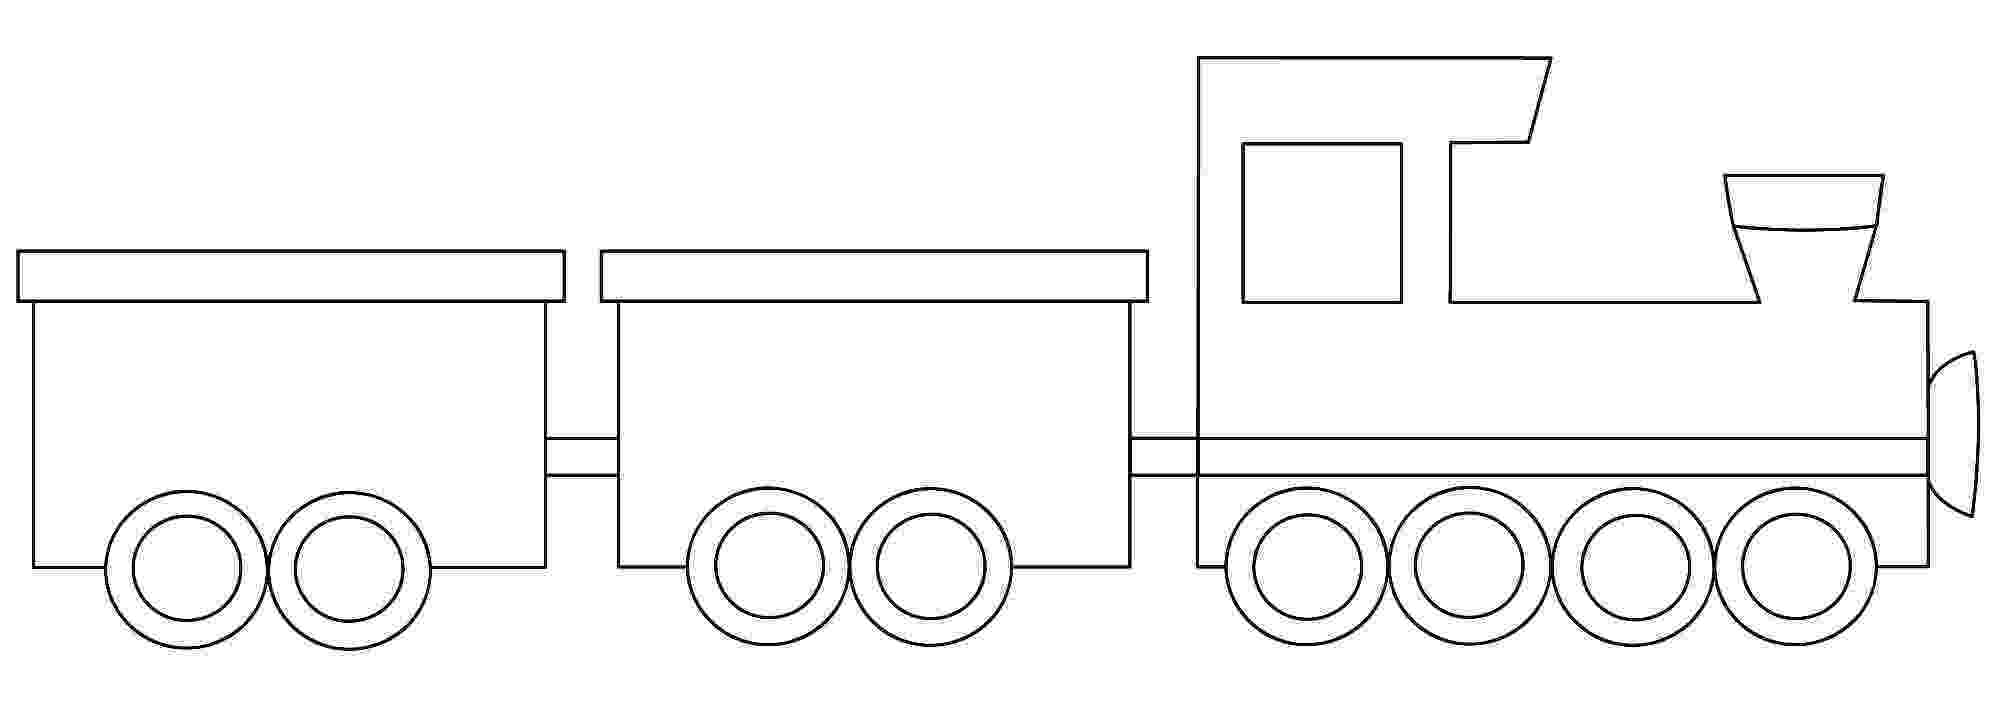 printable train free printable train coloring pages for kids cool2bkids train printable